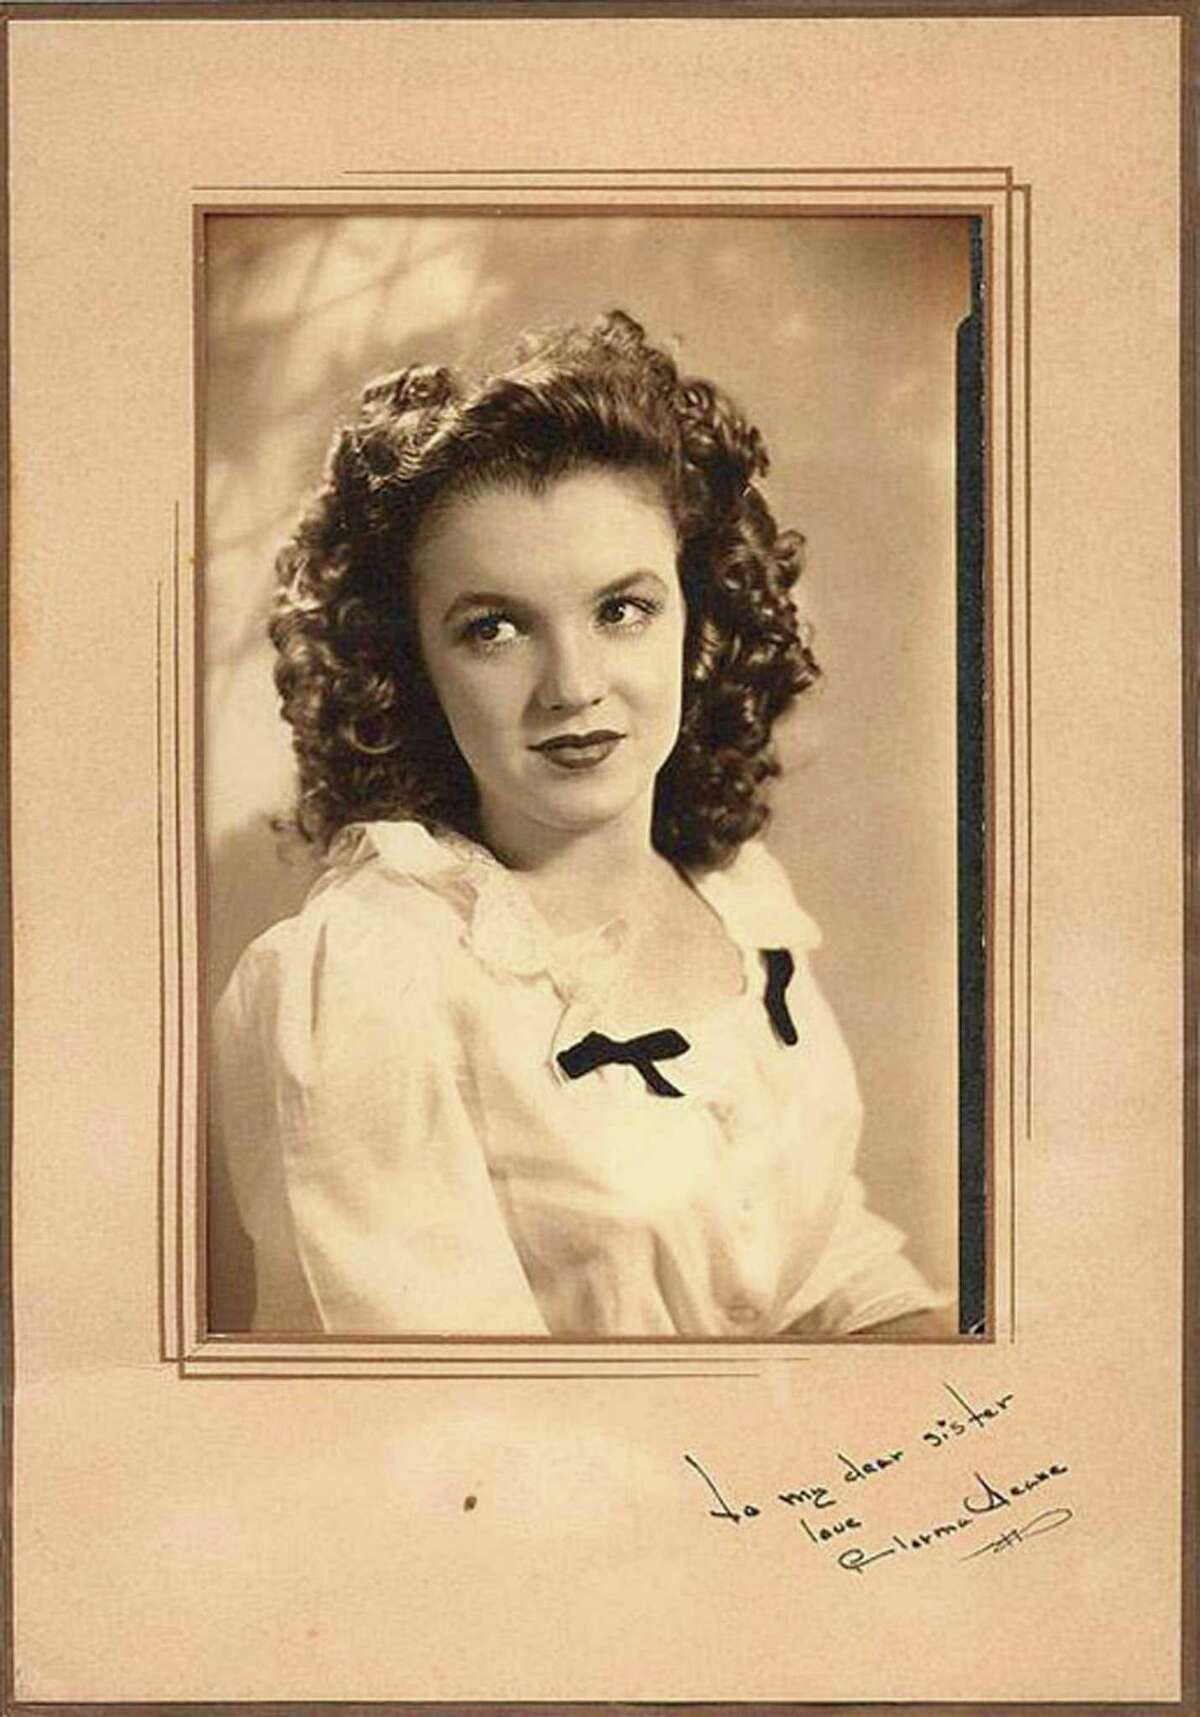 The vintage portrait of Norma Jean Dougherty, also known as actress Marilyn Monroe, with a rare autograph and dedication